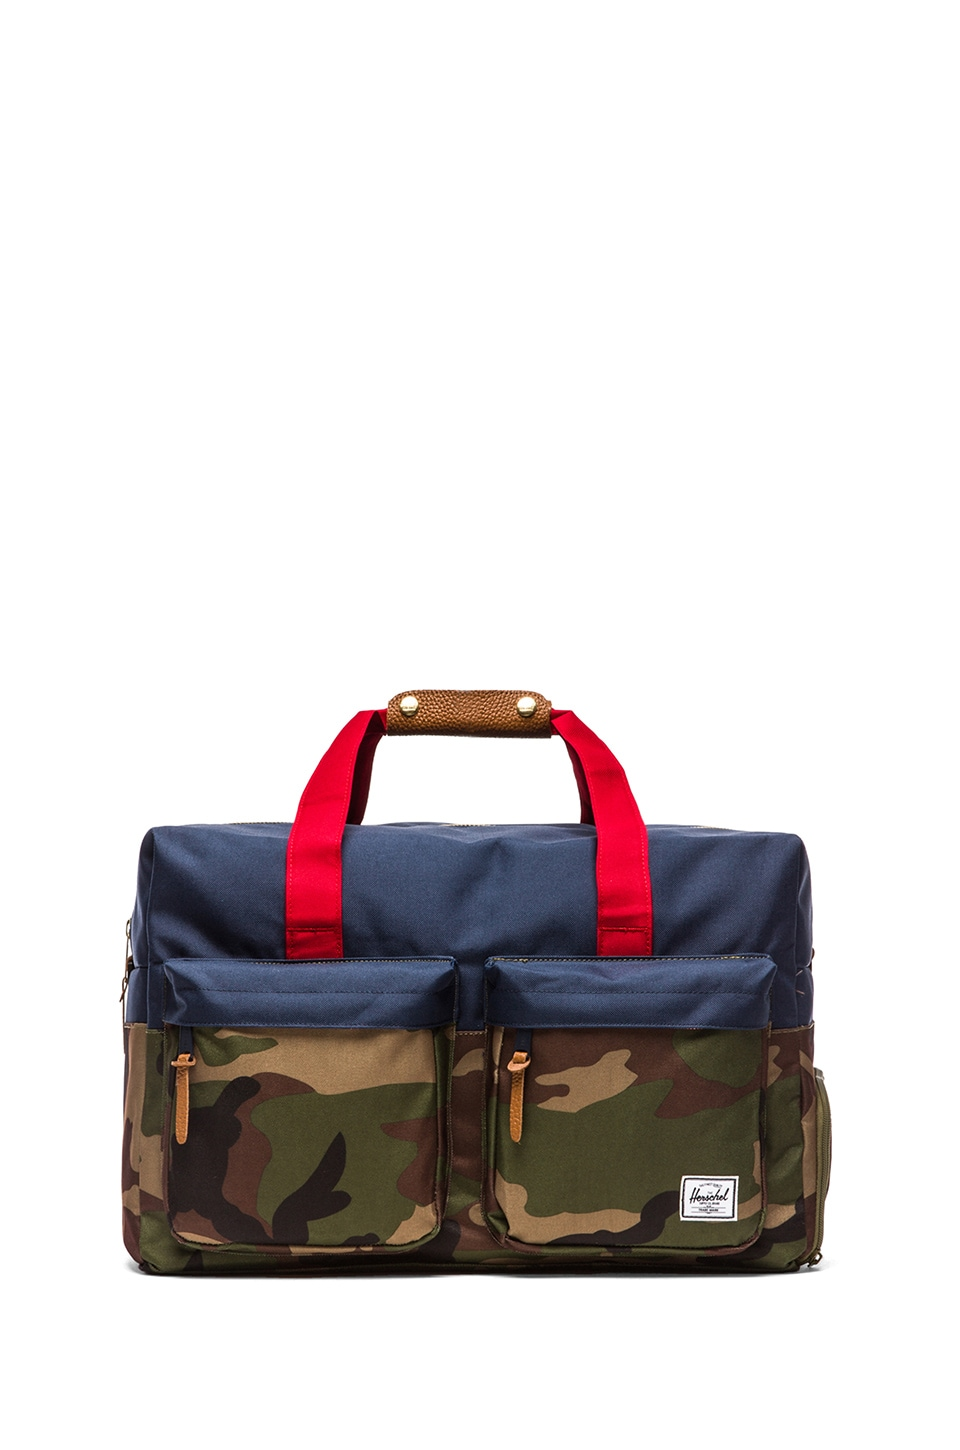 Herschel Supply Co. Walton Duffle in Woodland Camo & Navy & Red